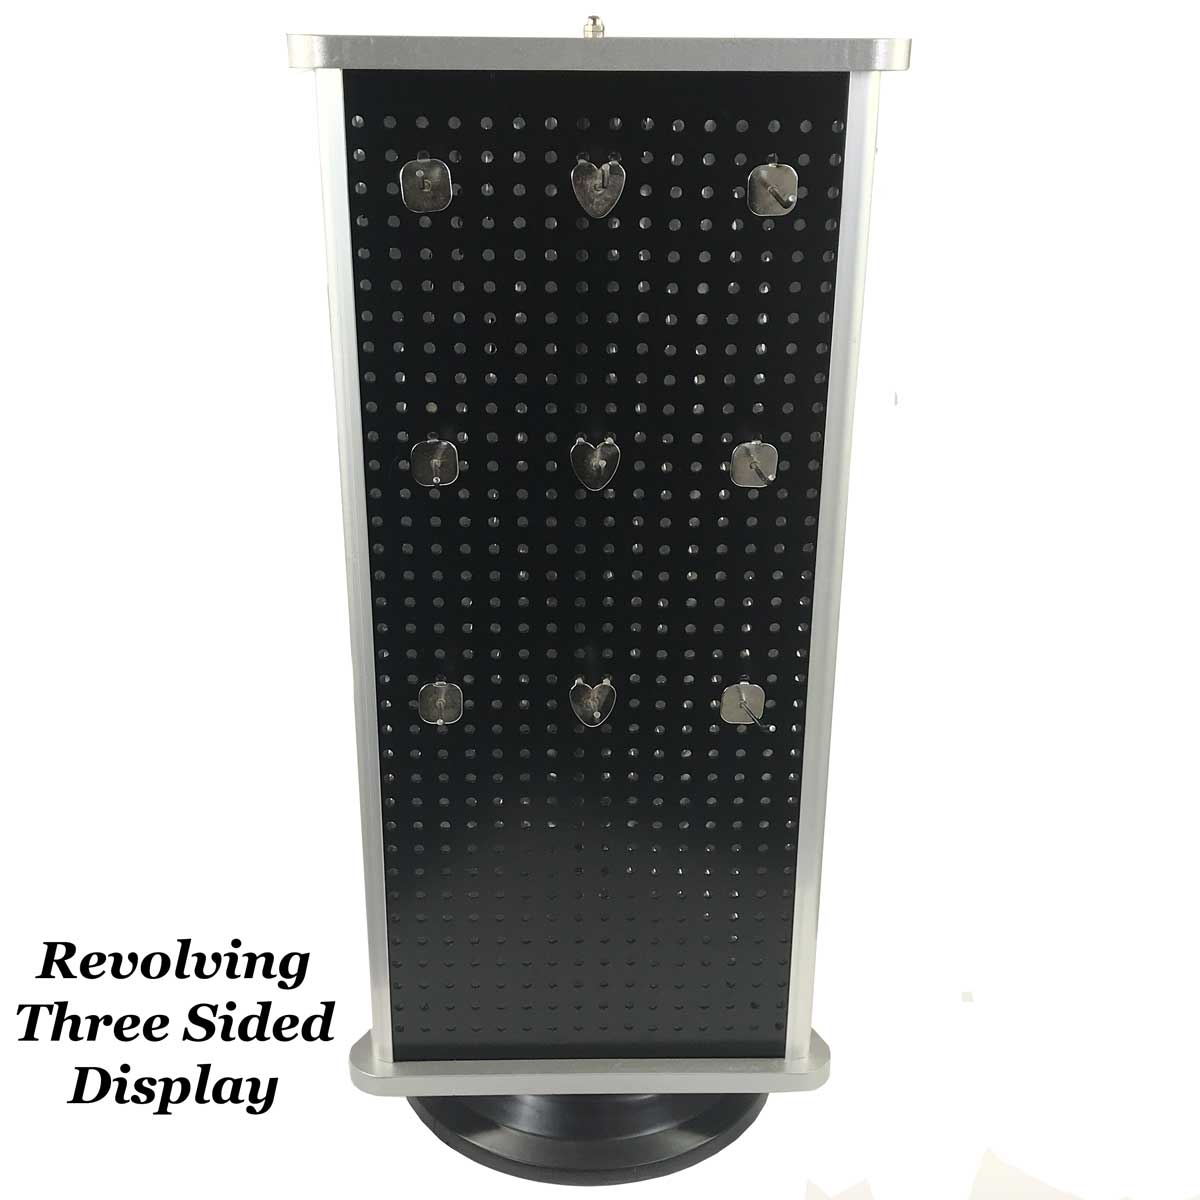 Wholesale Display & Merchandising (Many are Free) Revolving Three Sided Display -